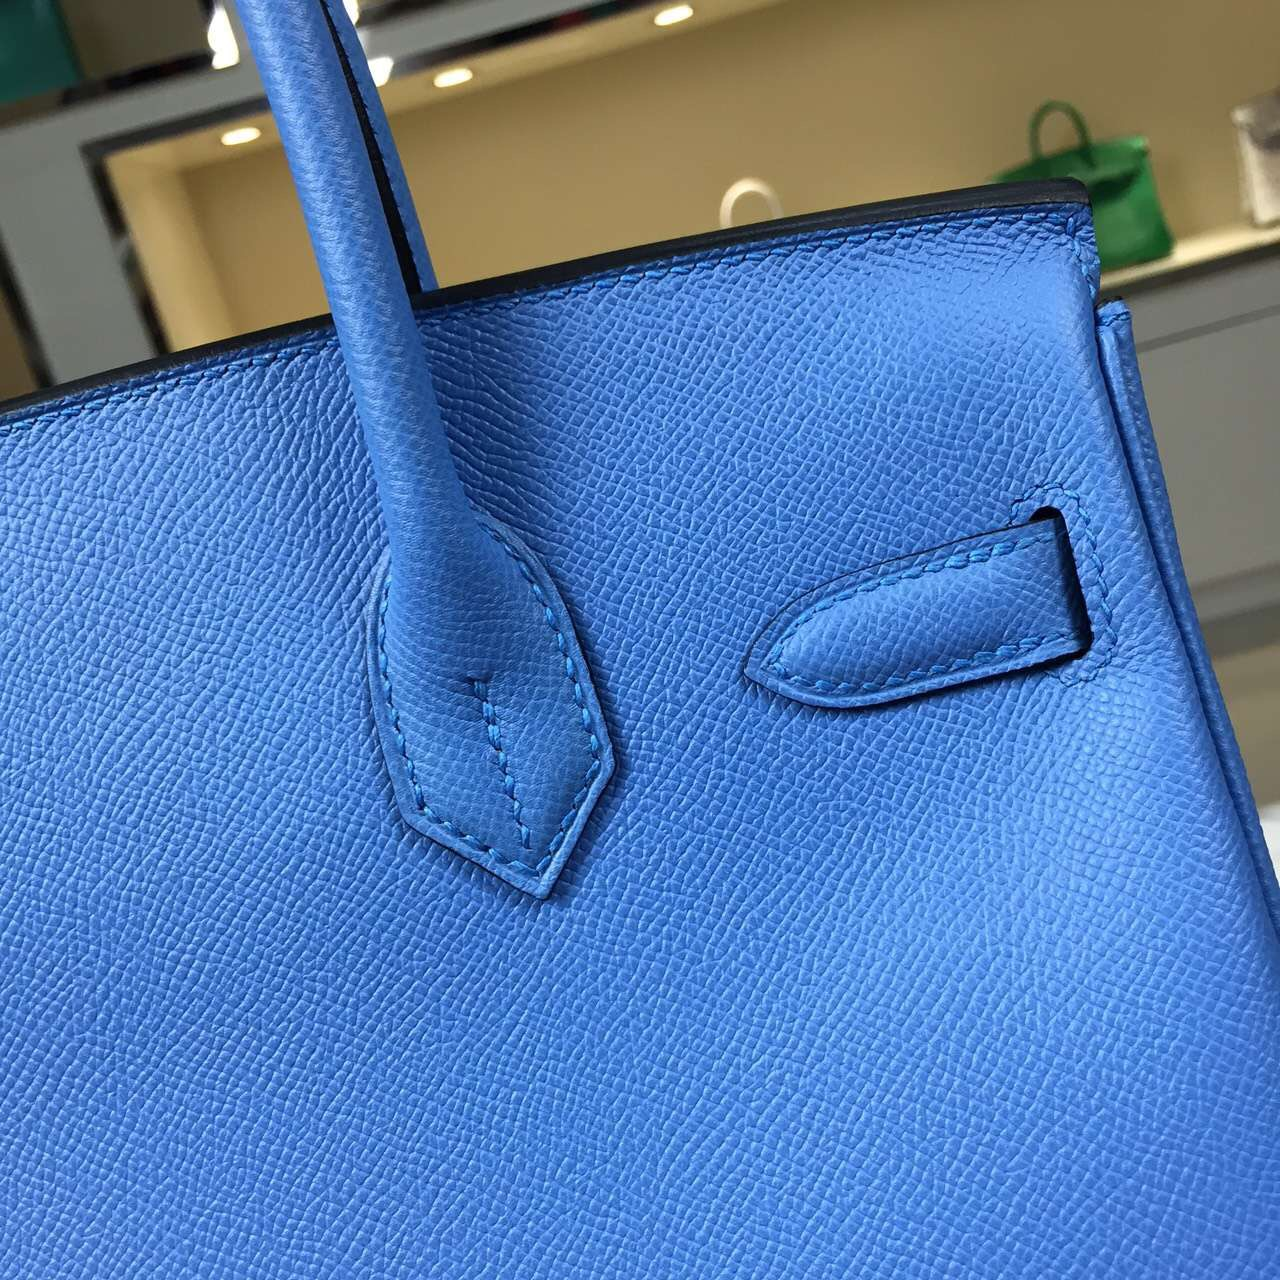 Luxury Bag Hermes Birkin 30CM 2T Blue Paradise Epsom Leather Women's Tote Bag